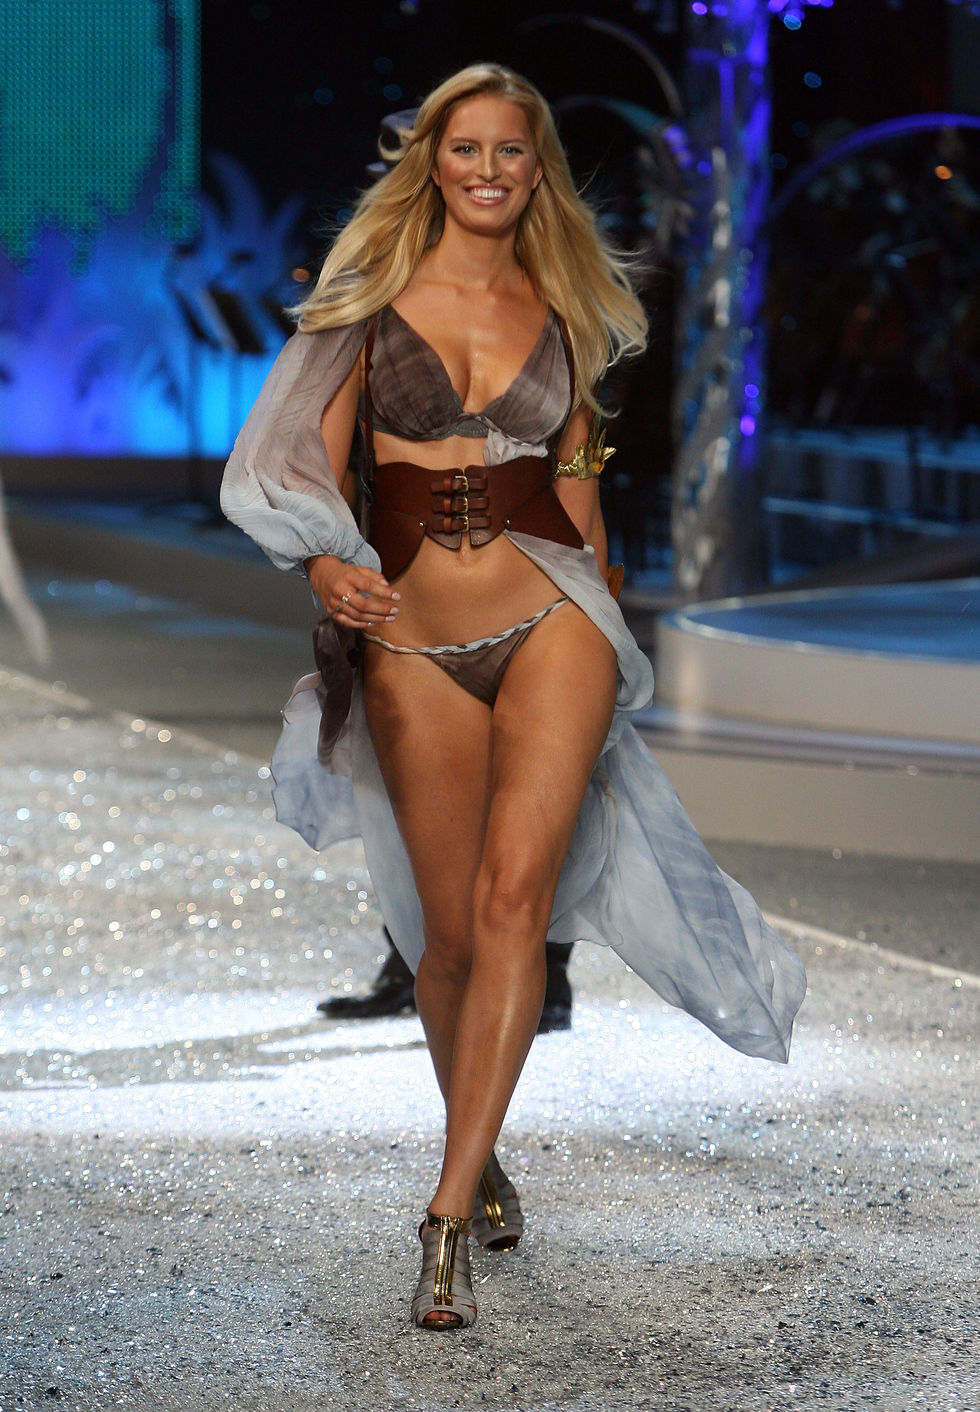 karolina-kurkova-2008-victorias-secret-fashion-show-01